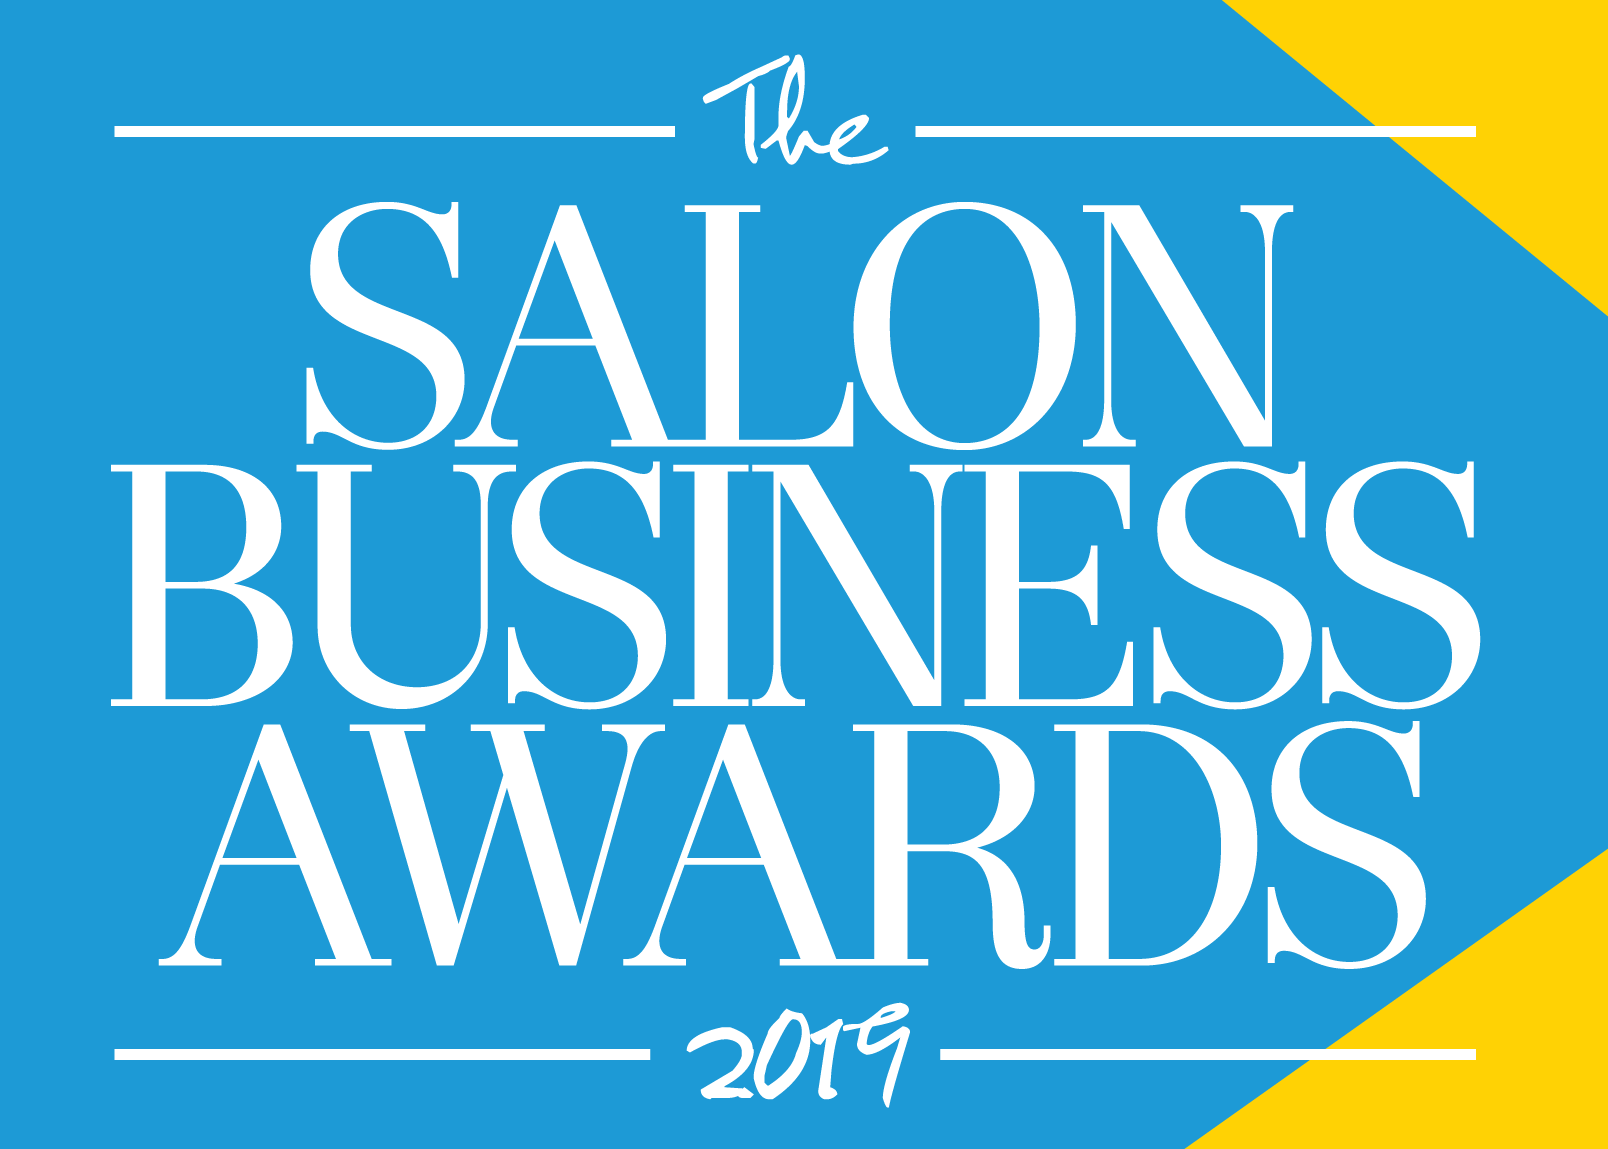 elements Lifestyle Are Finalists in The Salon Business Awards!